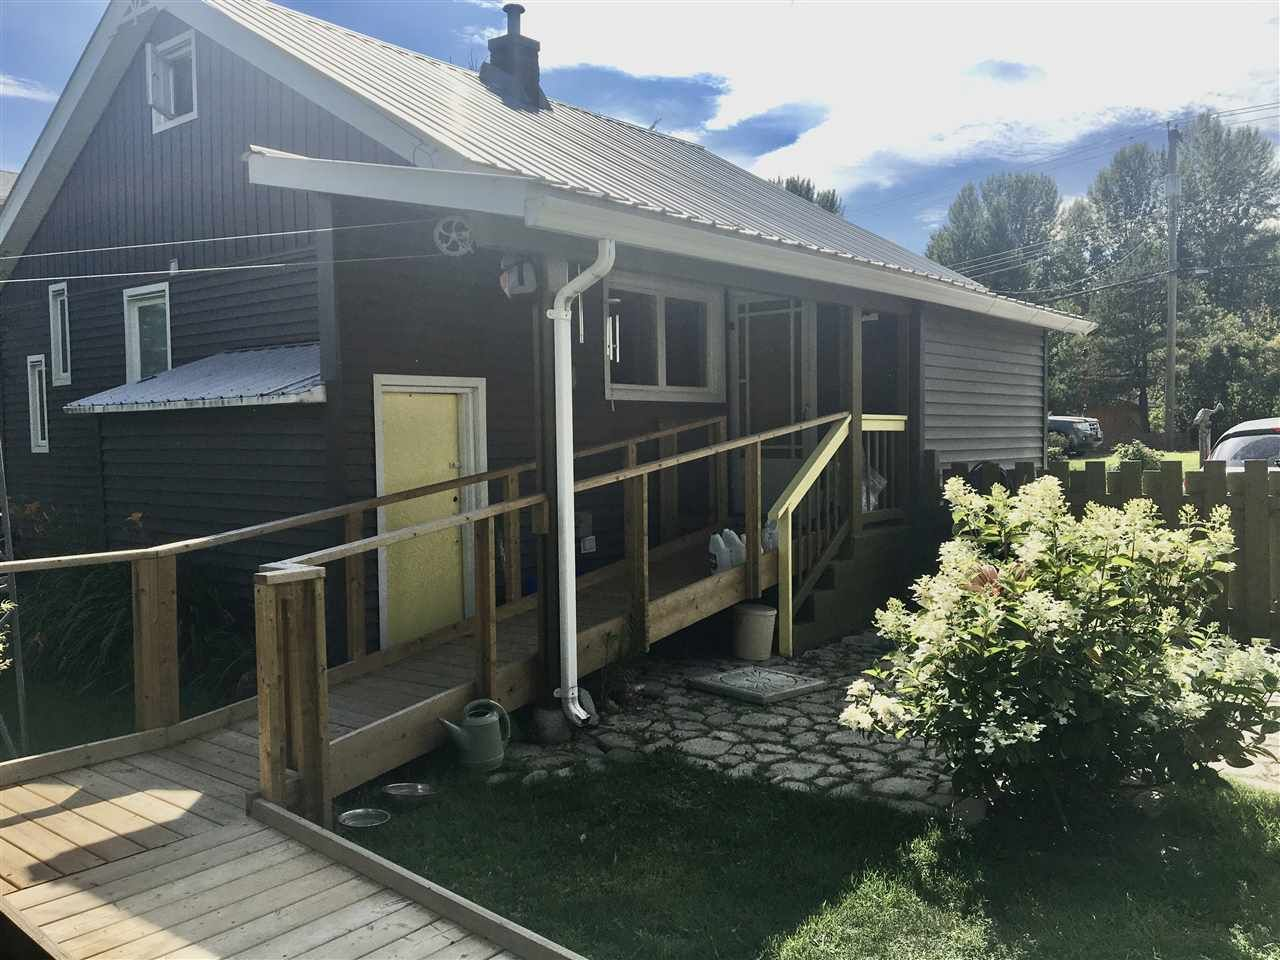 Photo 20: Photos: 230 BAKER Drive in Quesnel: Quesnel - Town House for sale (Quesnel (Zone 28))  : MLS®# R2481471